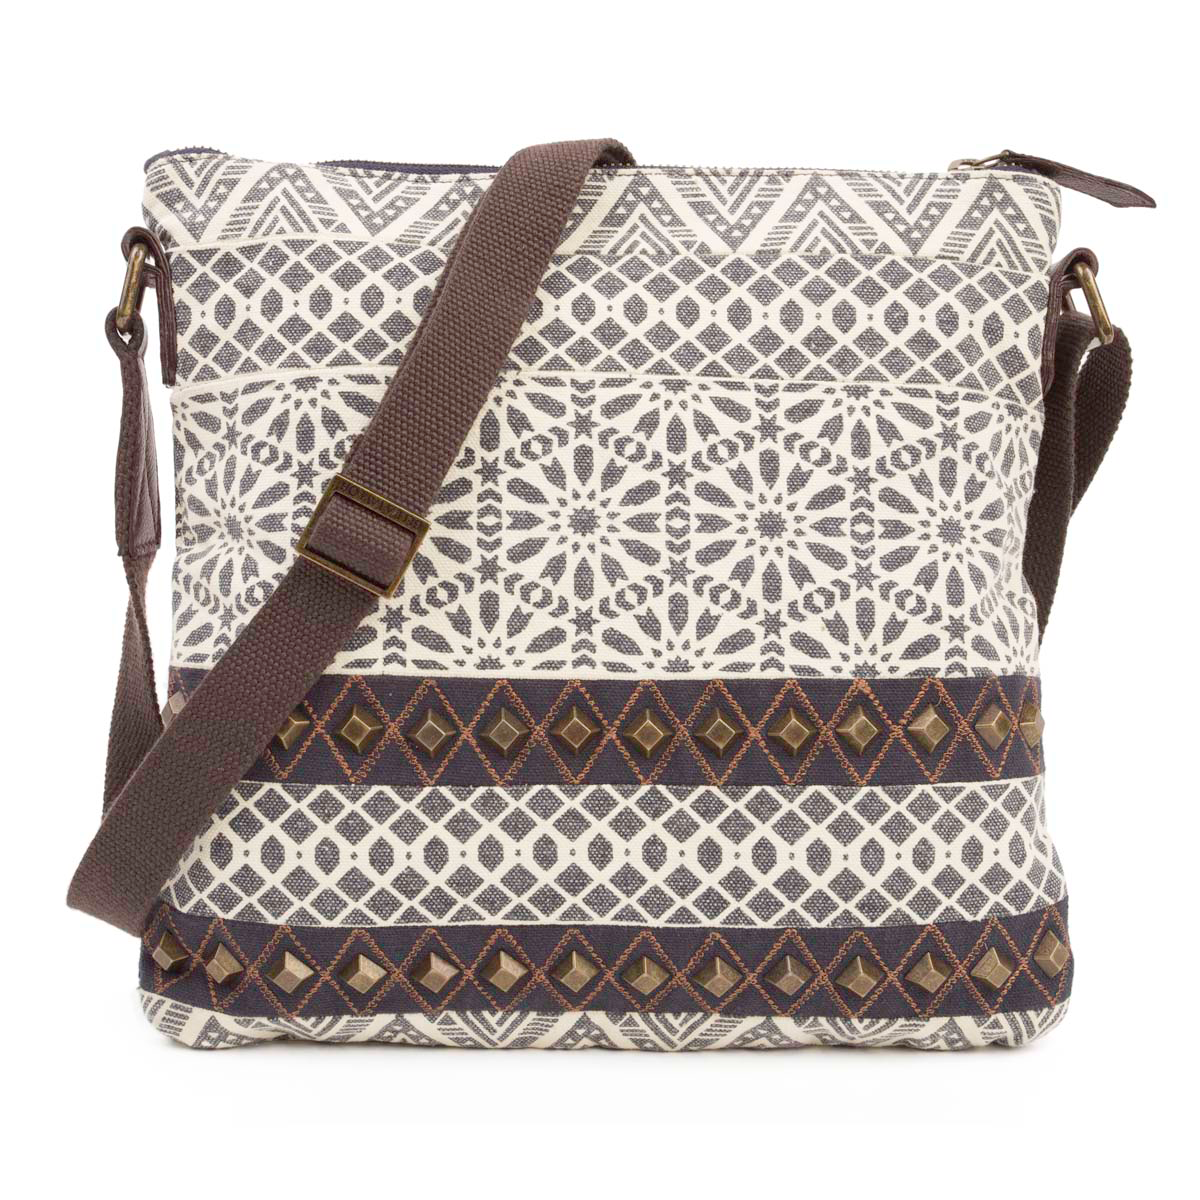 BROOKE EXPLORER CROSSBODY